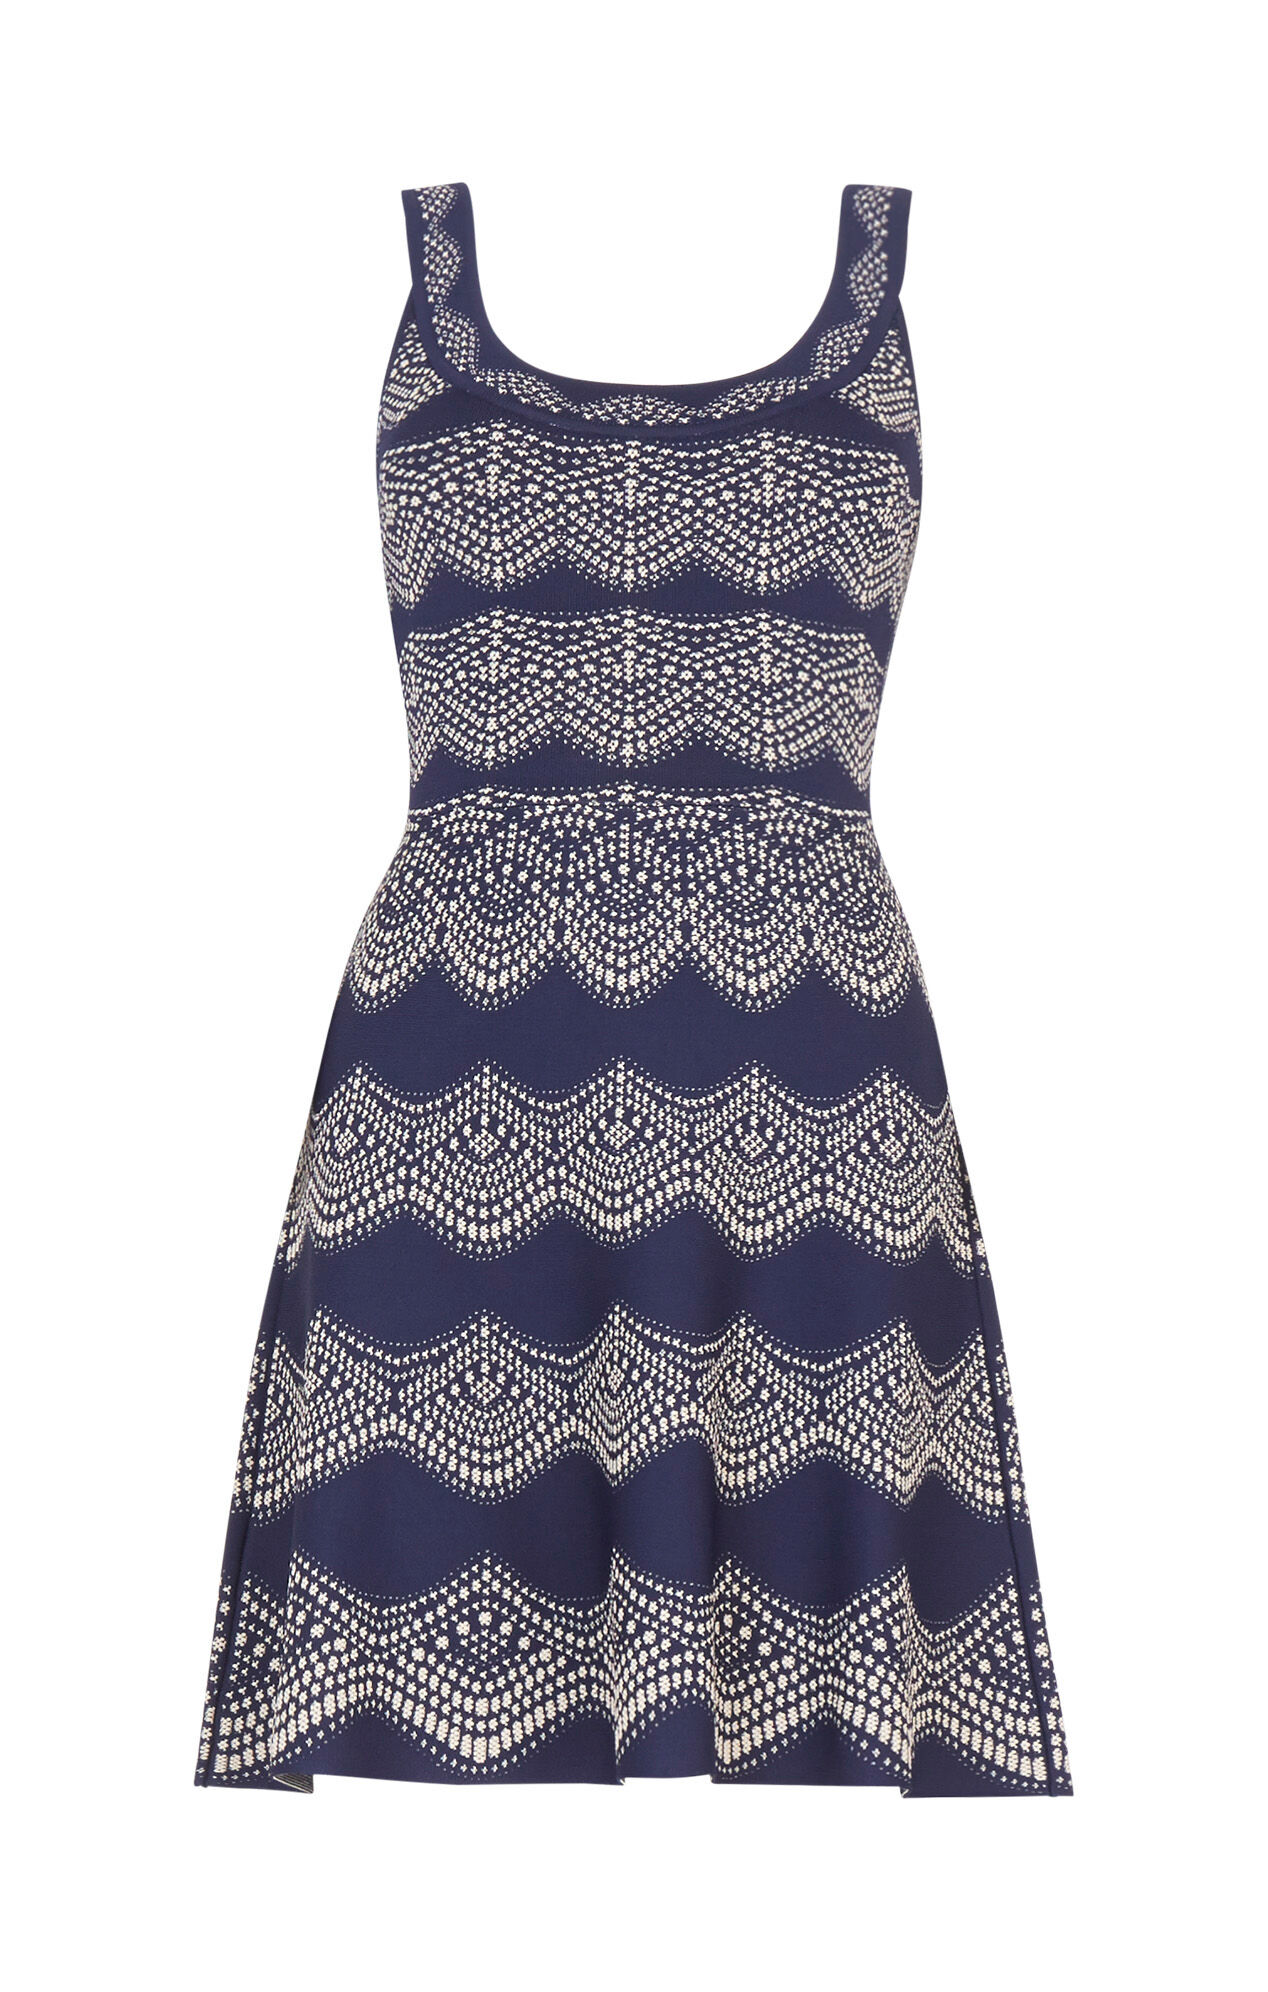 Cyndi Knit Jacquard Dress